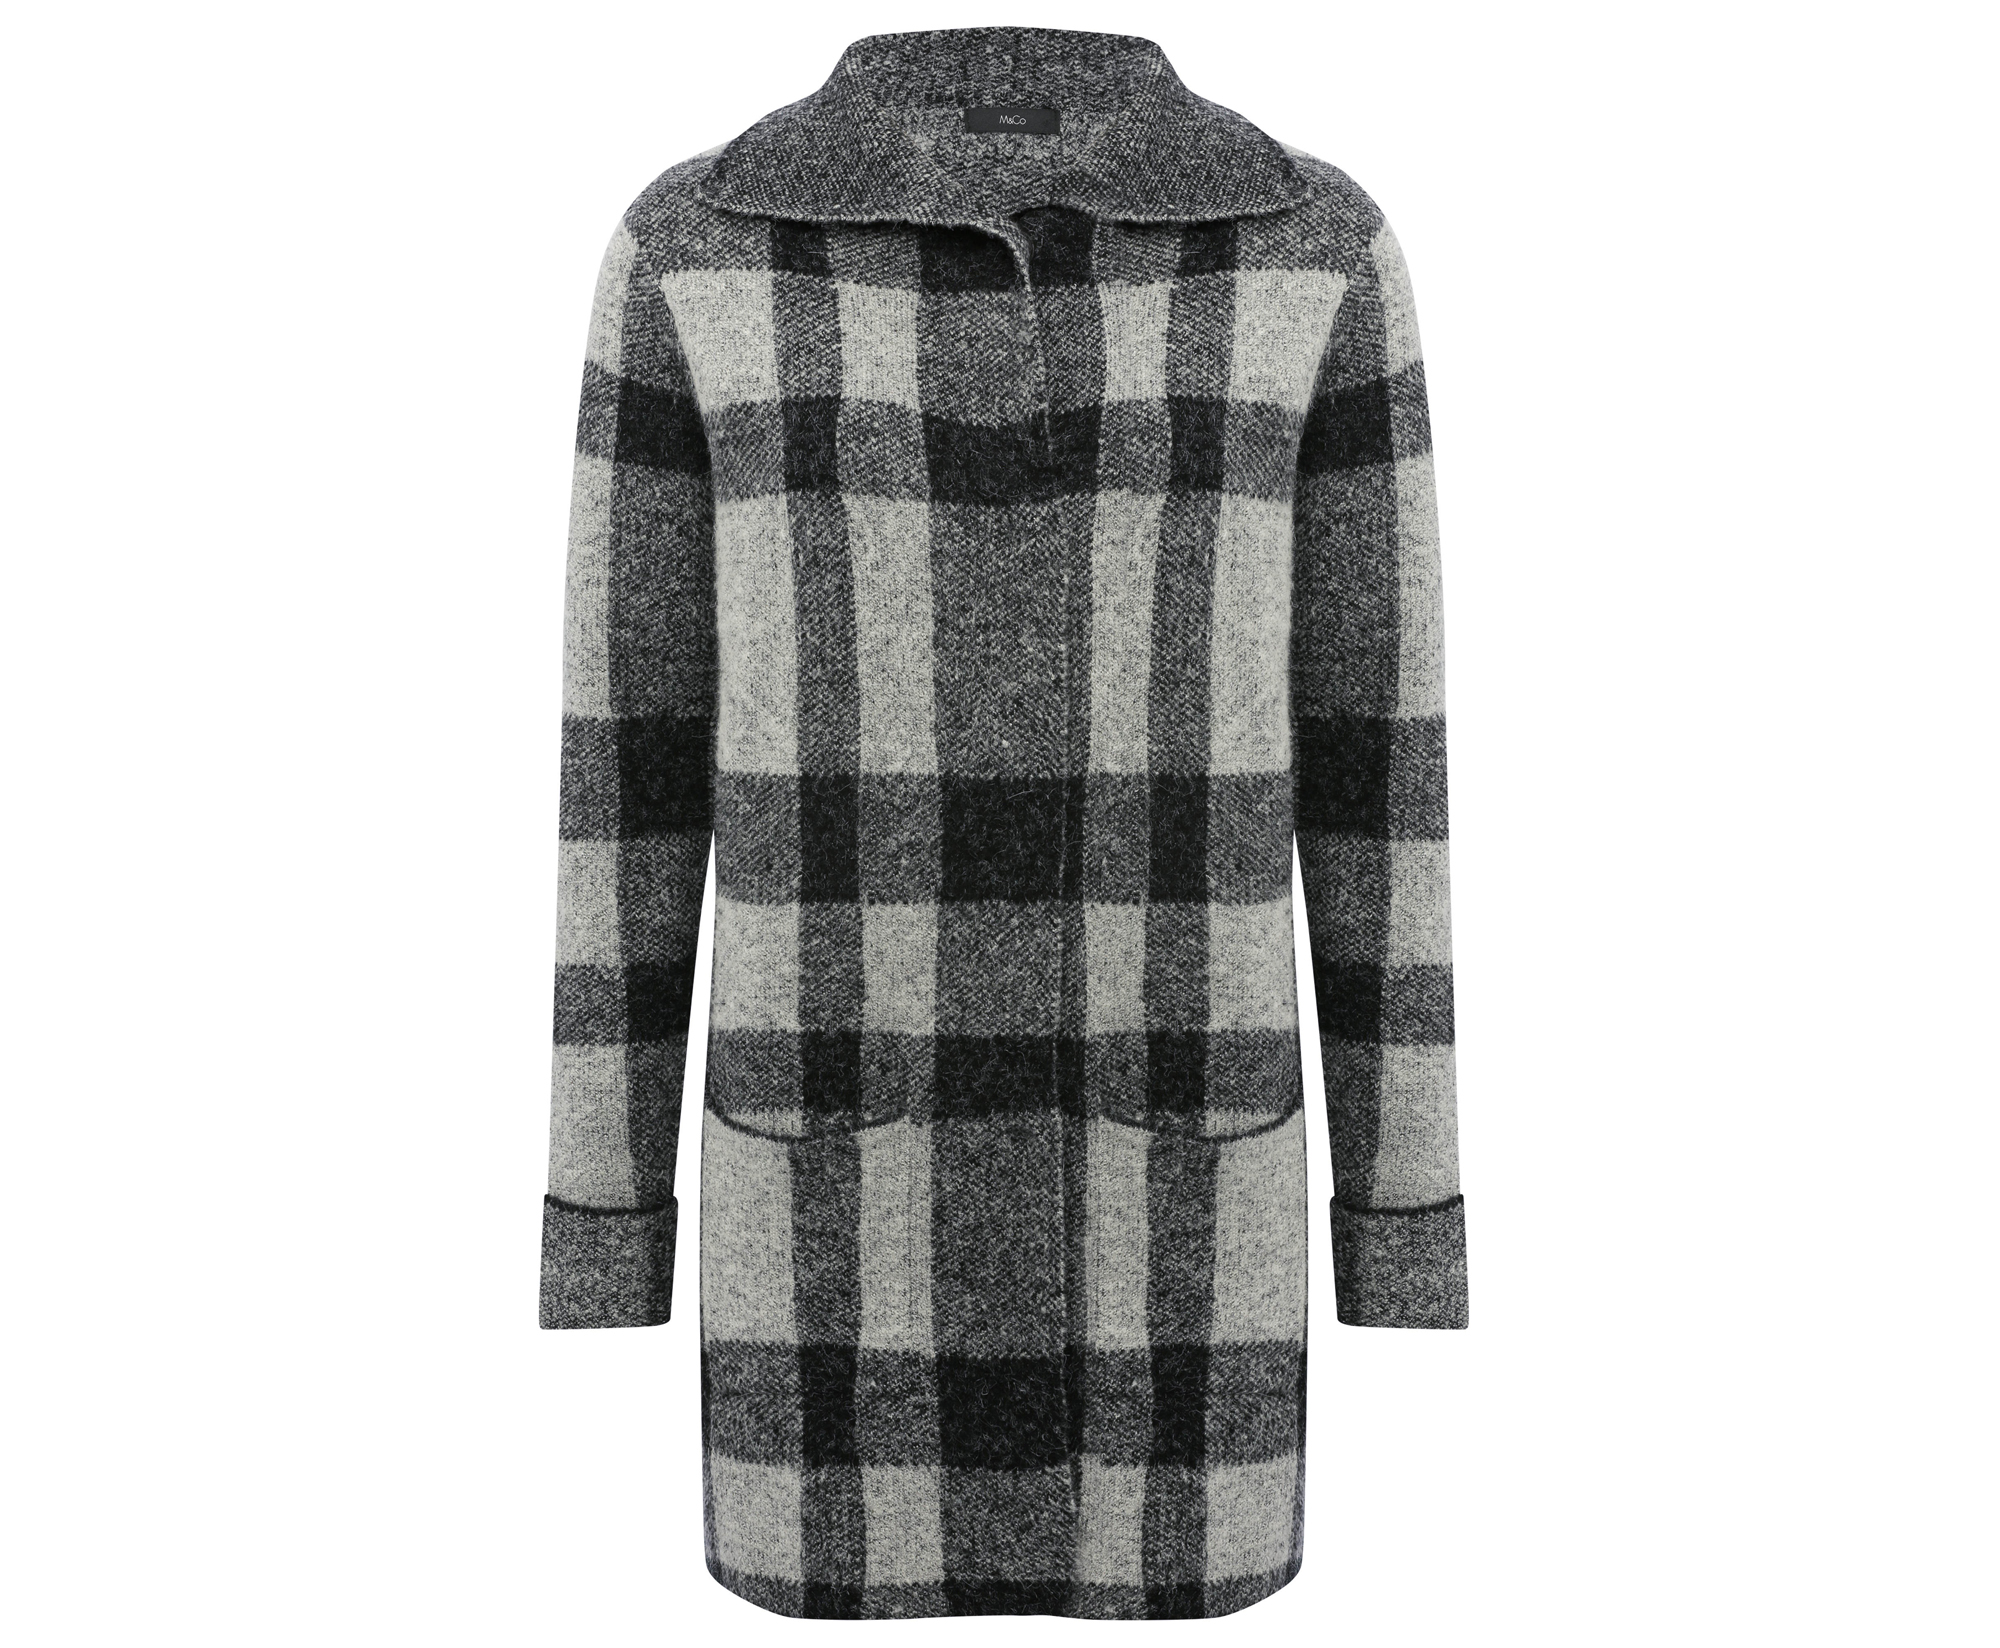 M&Co Check Oversized Cardigan